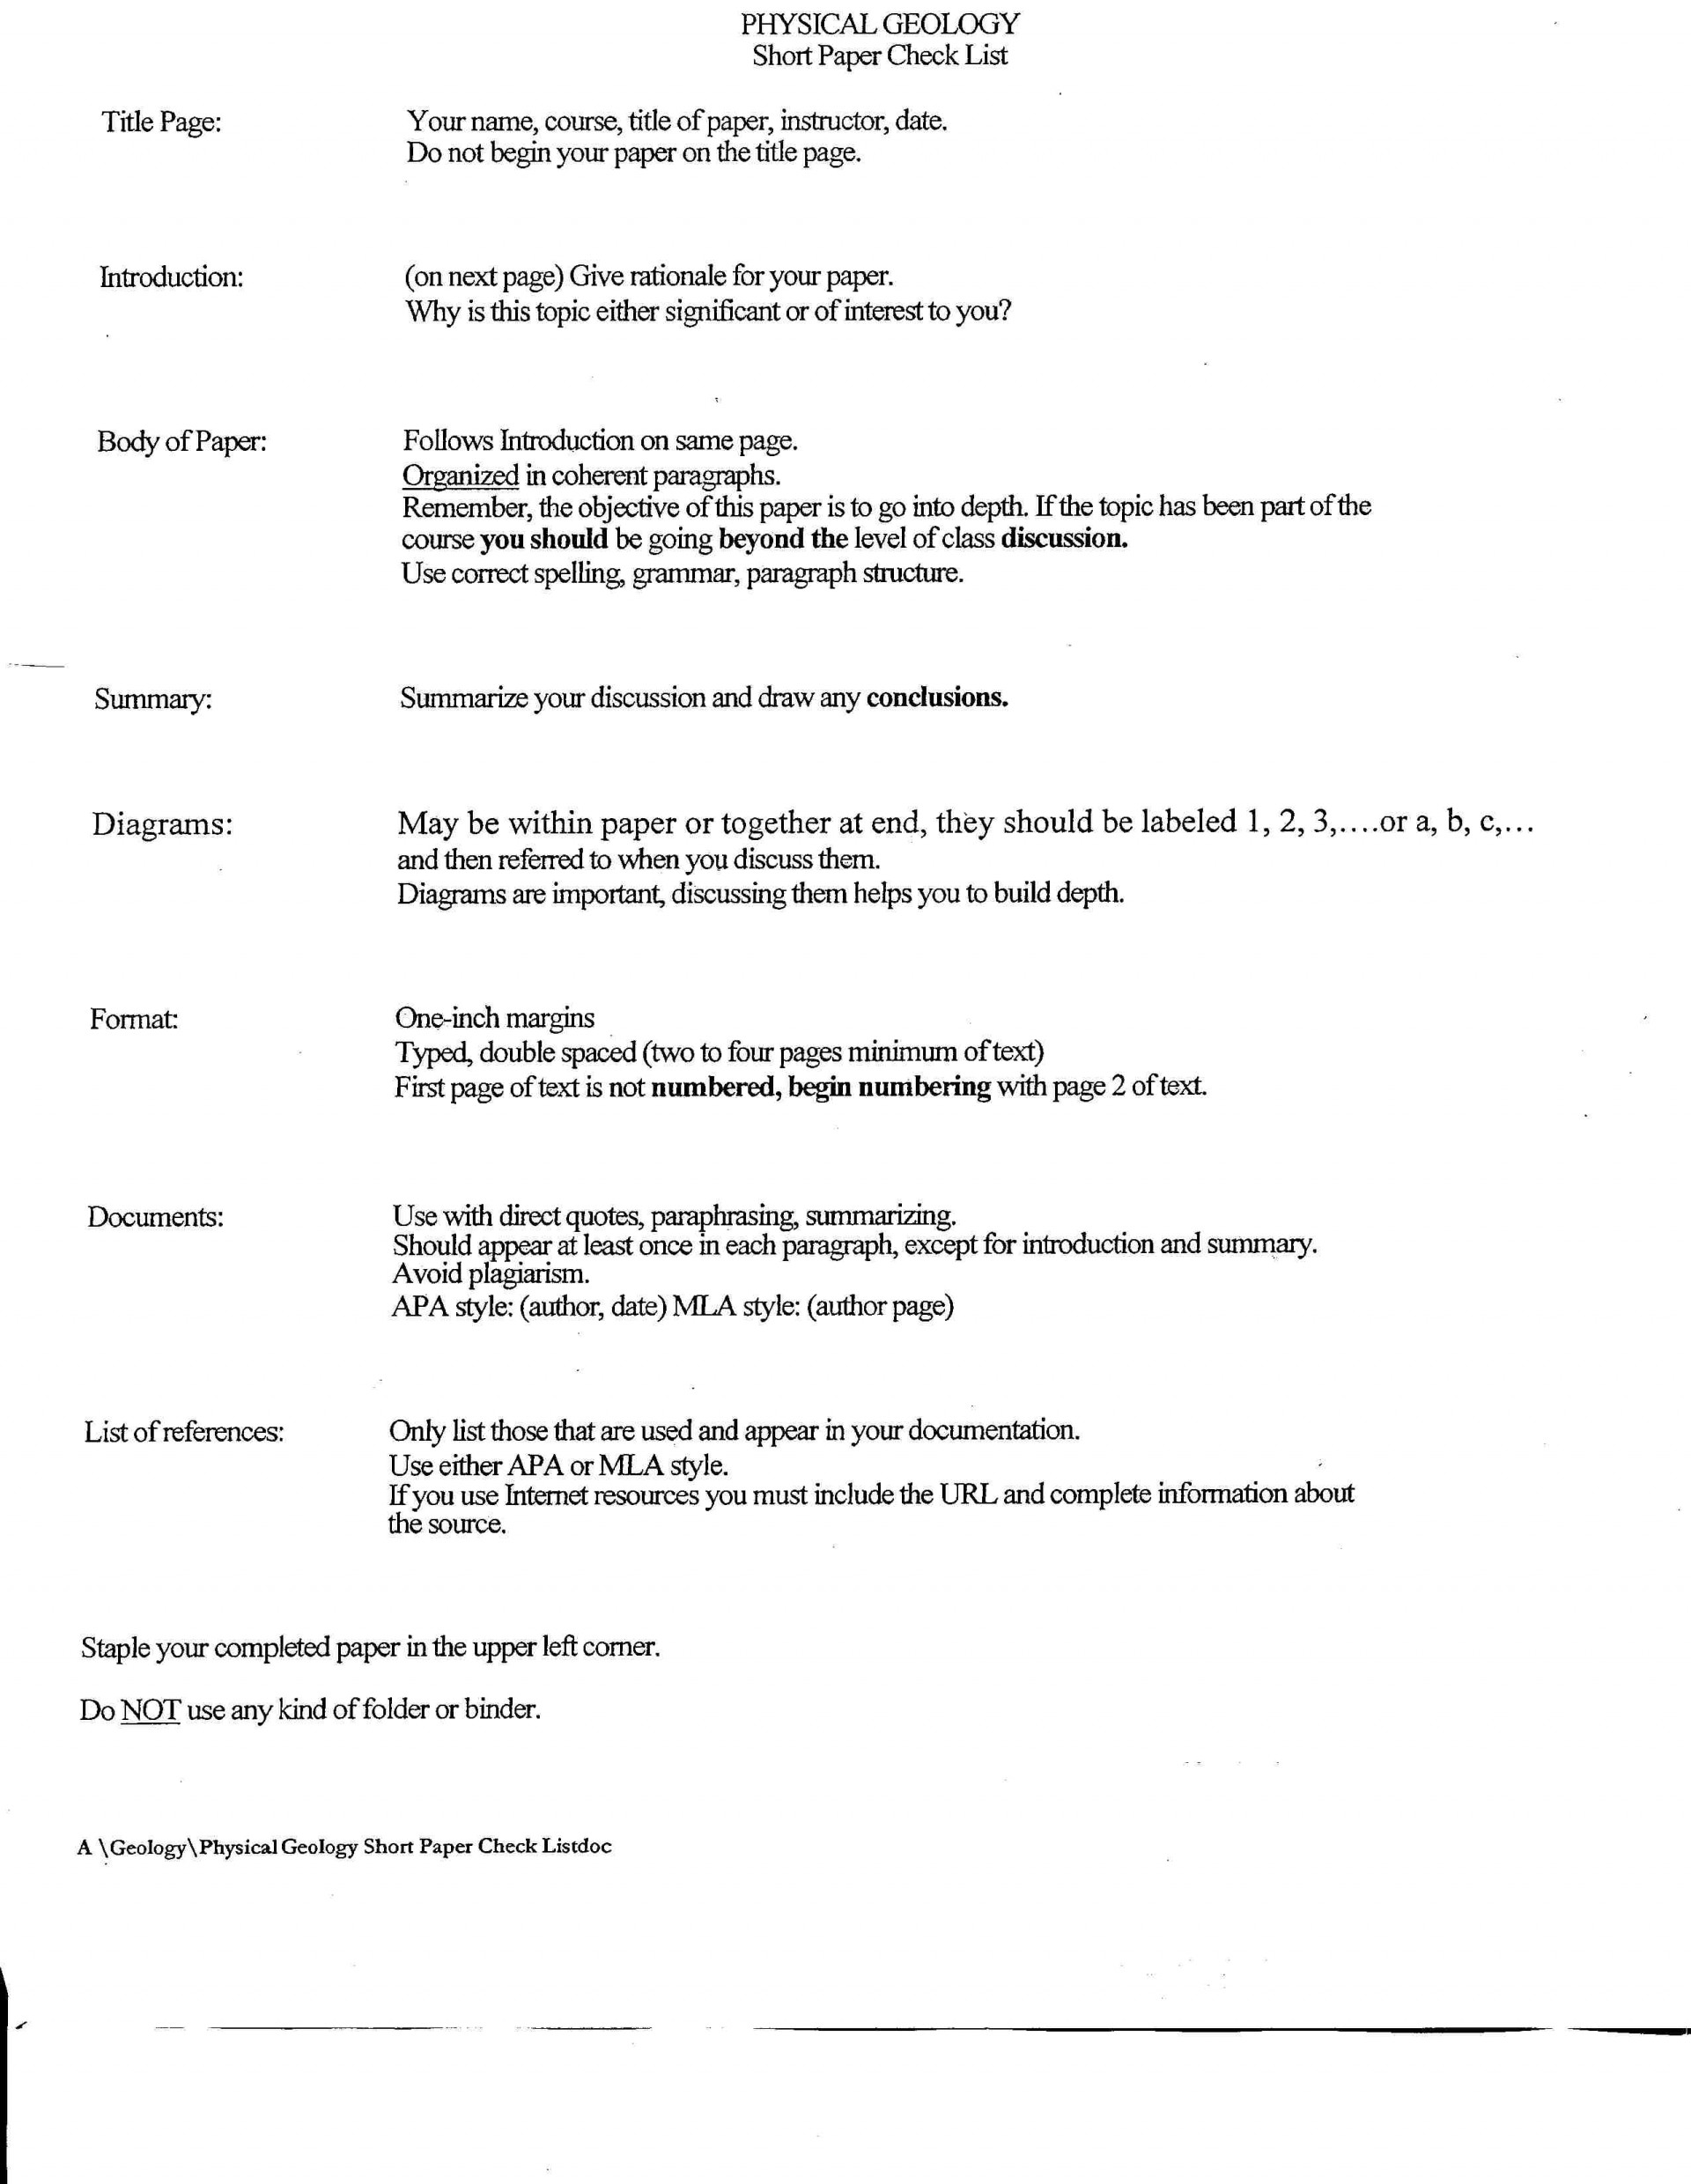 015 Research Paper Short Checklist College Papers Fascinating Format 1920